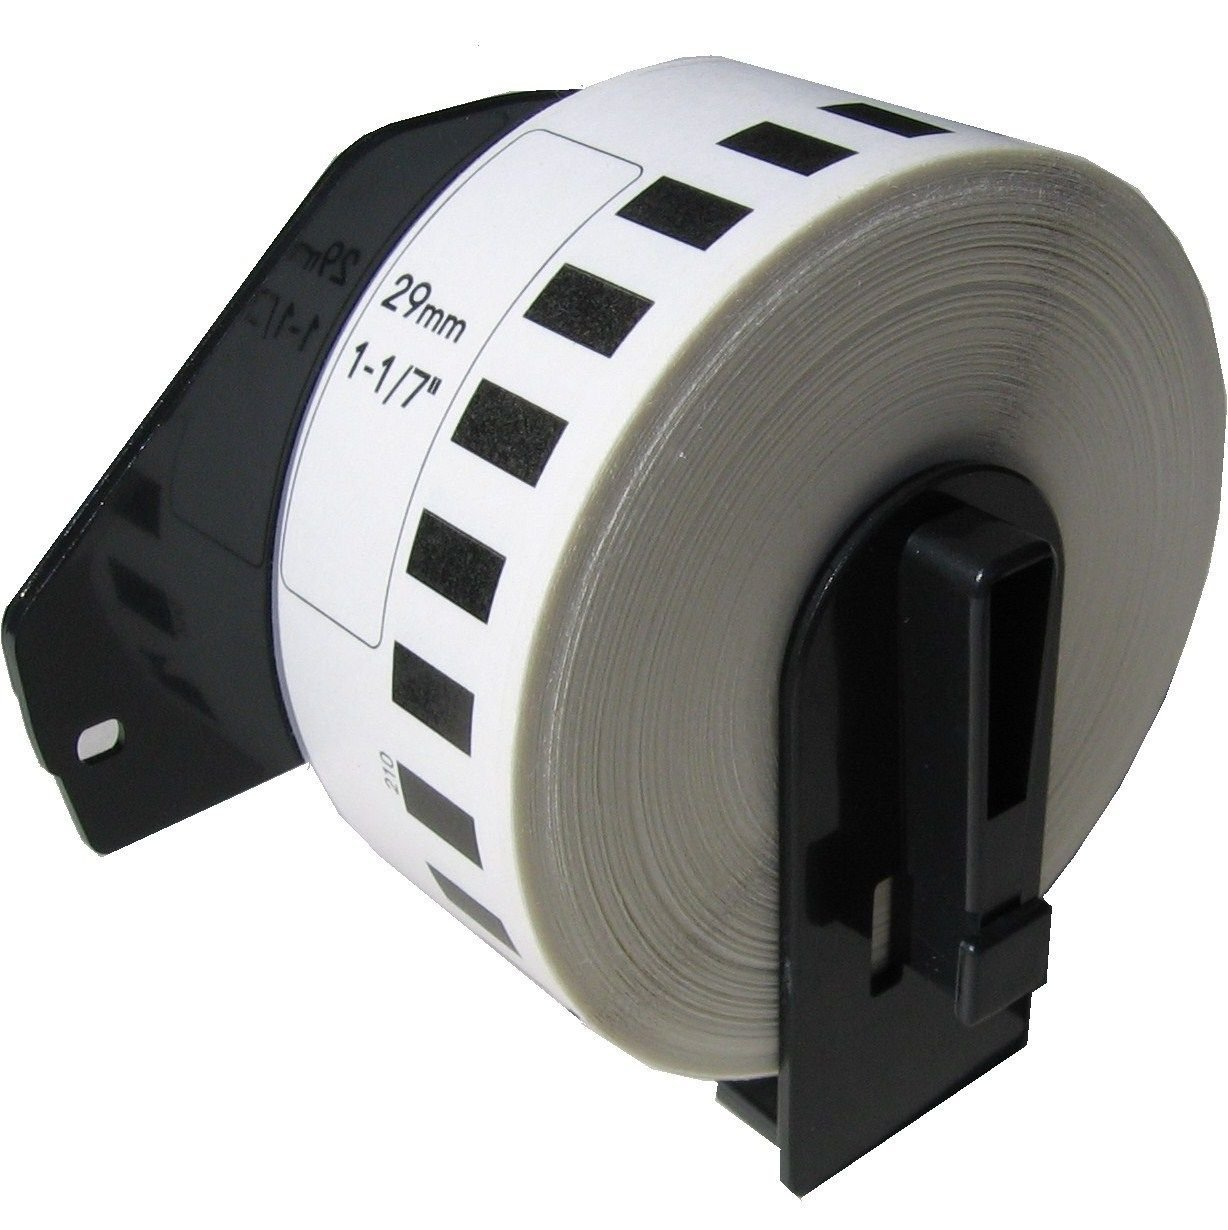 Continuous Paper, BROTHER-Compatible DK-2210 Continuous Paper Labels with Reusable cartridge (1-1/7'' x 100'; 29mm30.48m) - BPA Free! (2 Rolls+1 Cartridge)